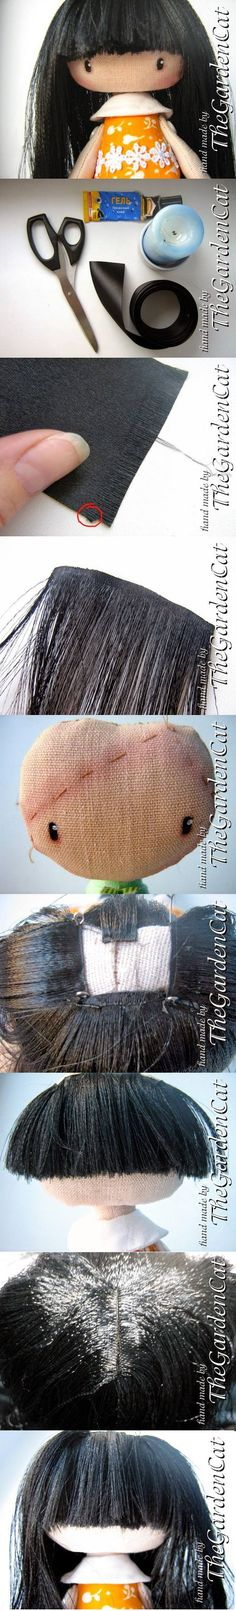 How to make doll's hair with a ribbon.